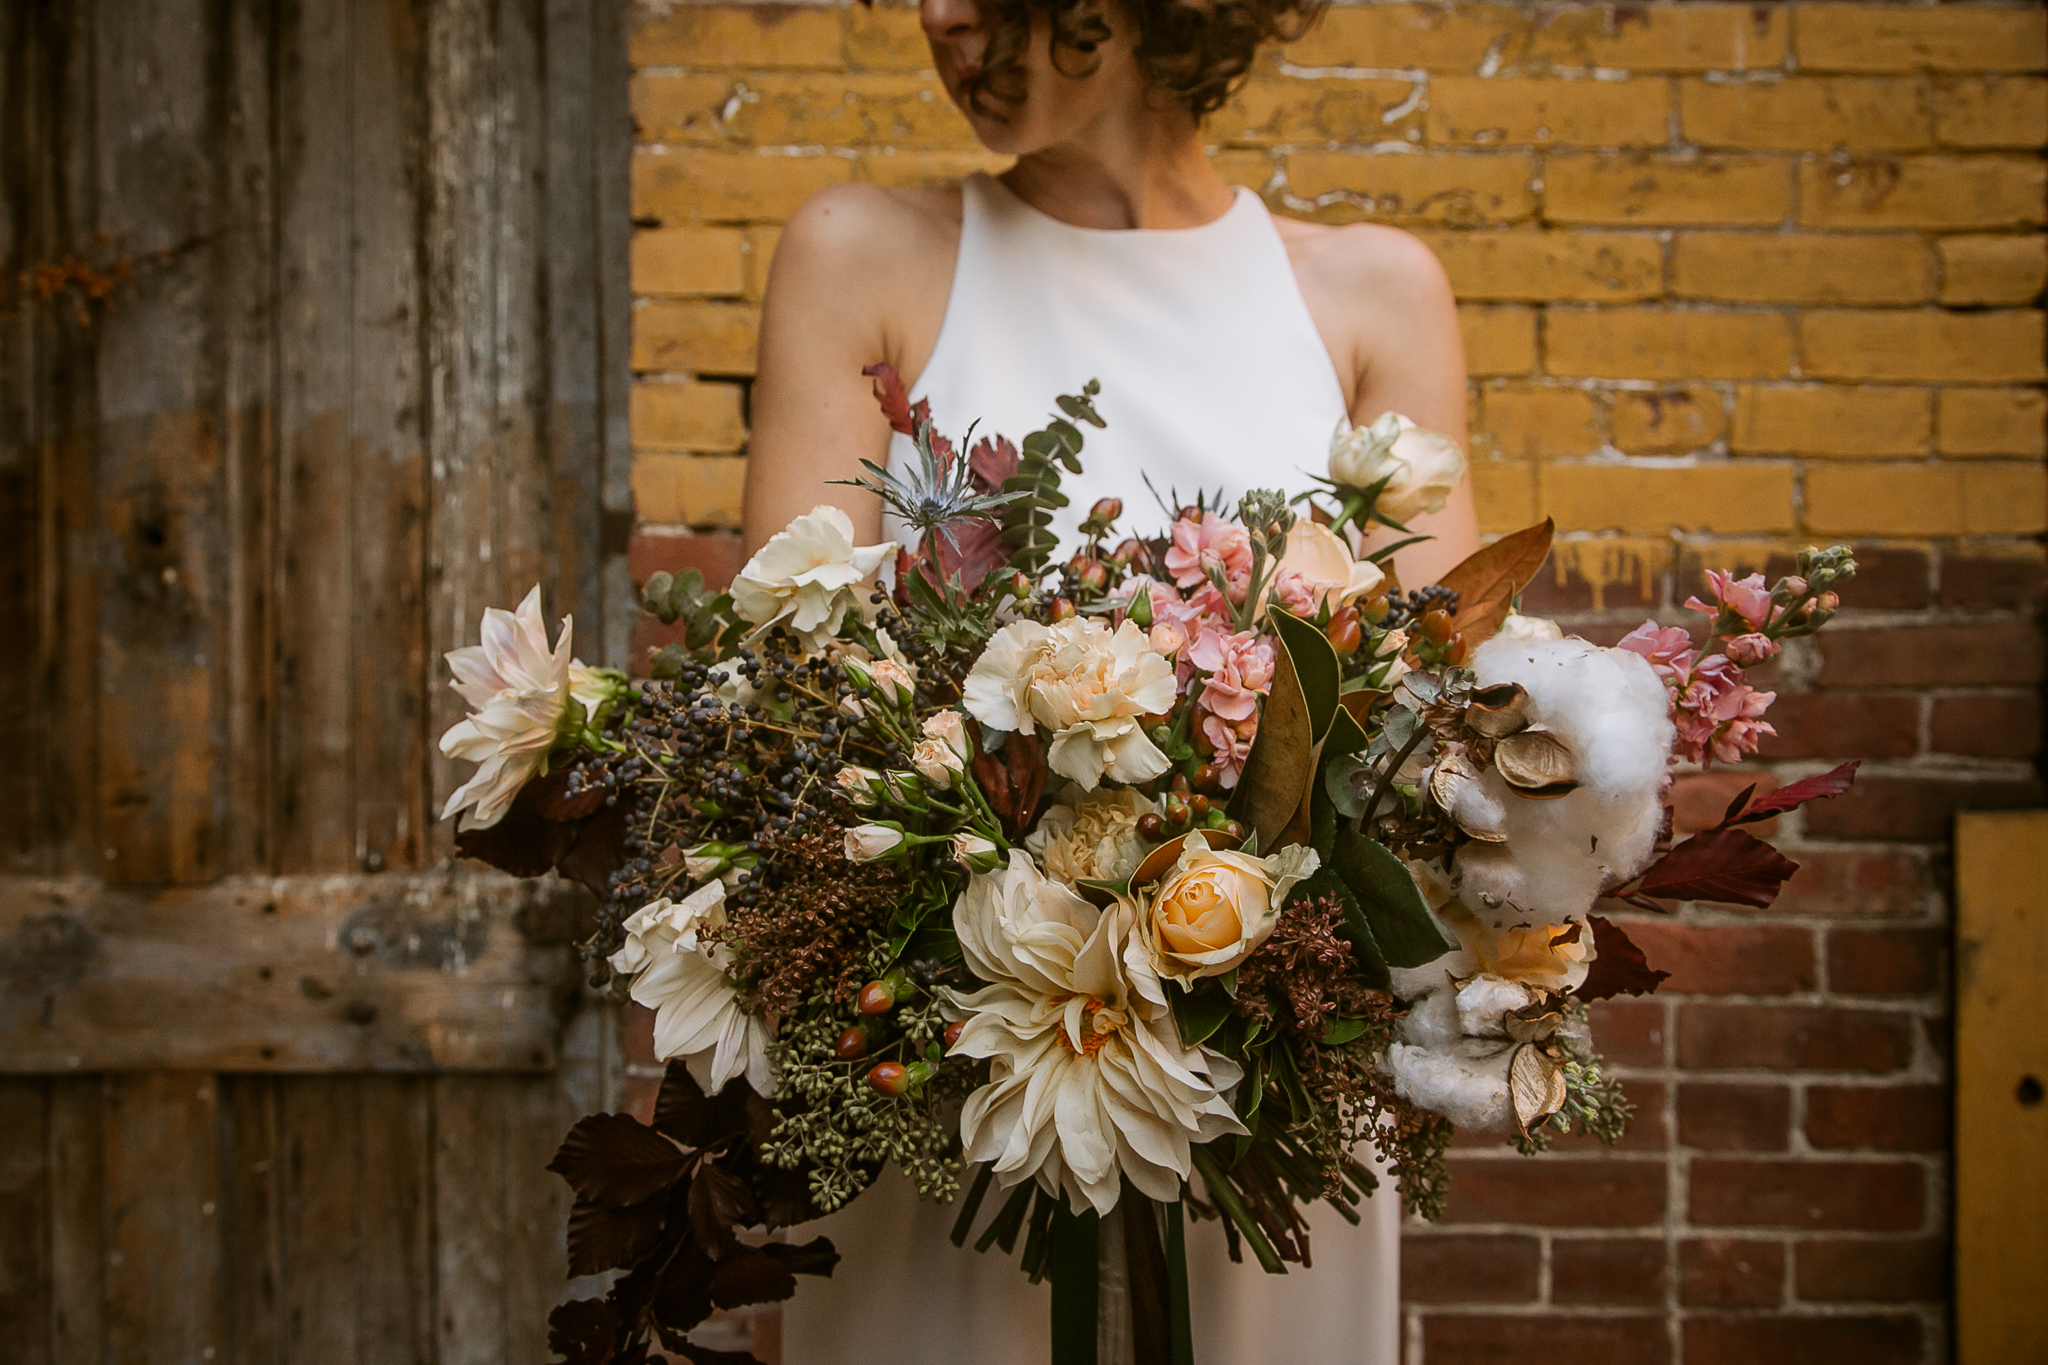 Watershed_Floral__inspiration_maine-17.jpg